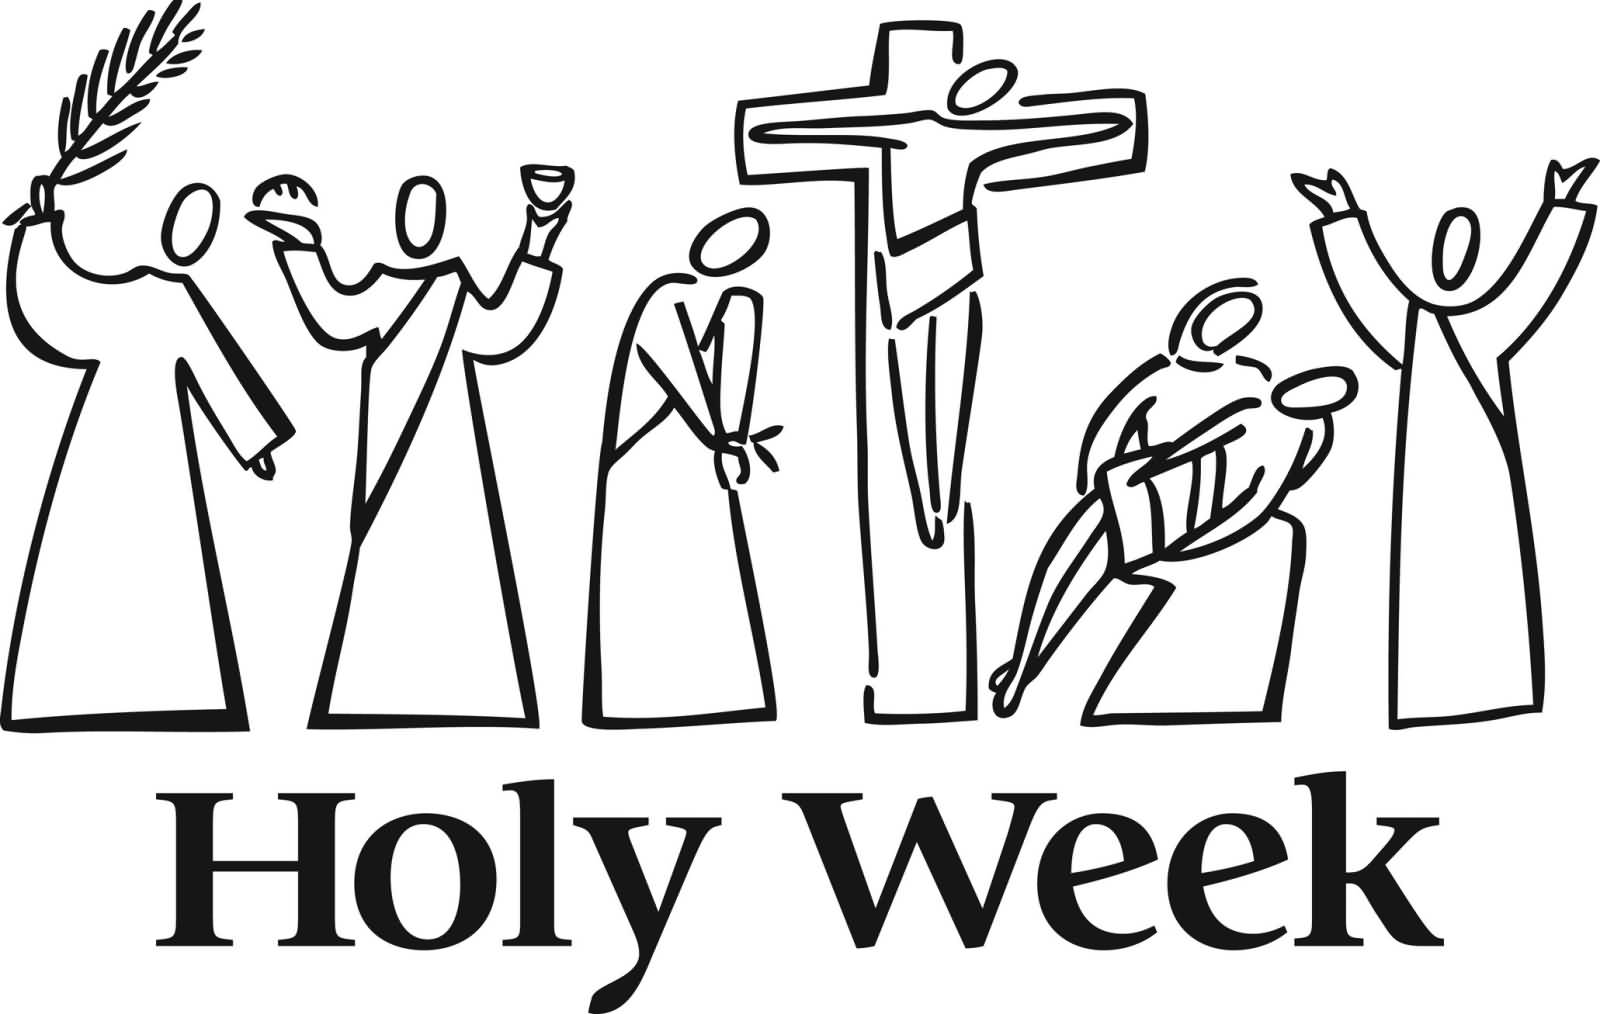 50 beautiful holy week wish pictures and images rh askideas com holy week clipart free holy week clip art background